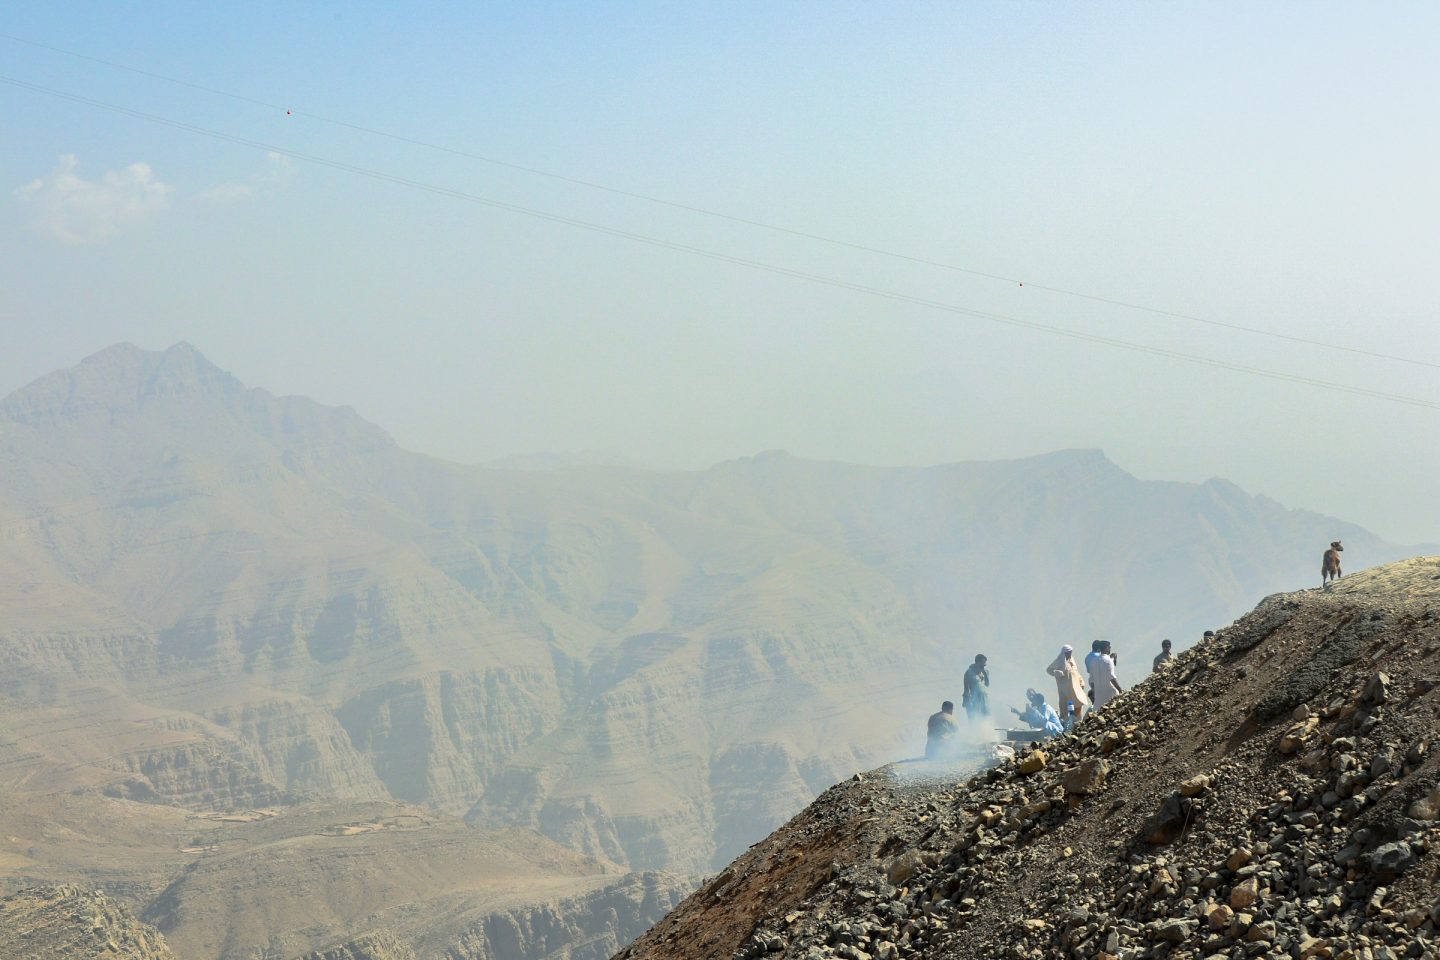 Places to Stop on a UAE Road Trip from Dubai - Jebel Jais